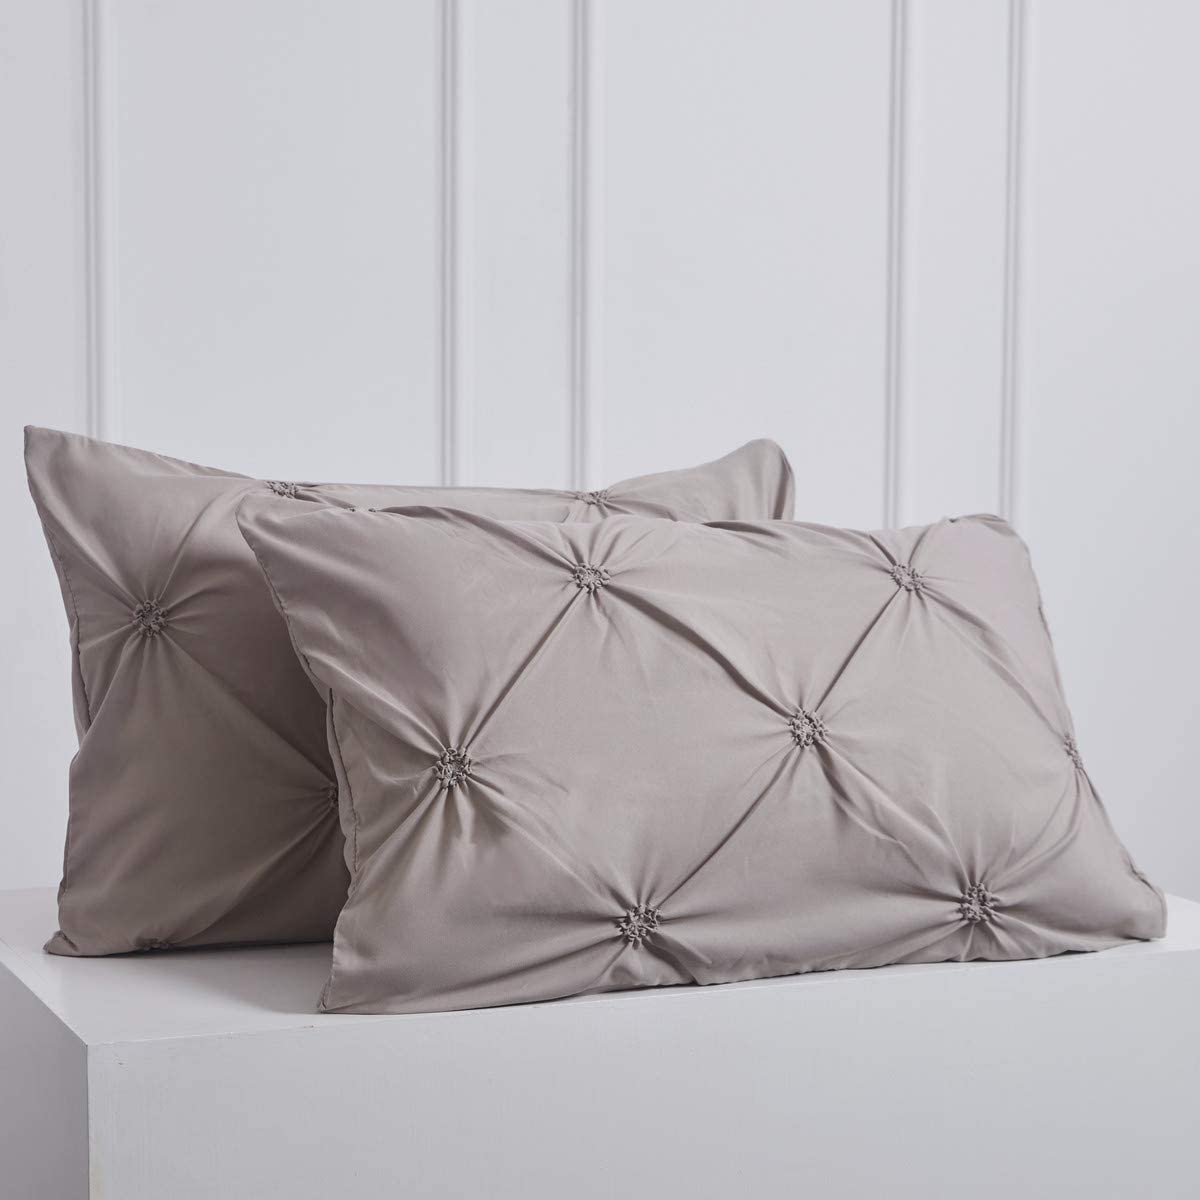 Raytrue-X Pillow Cases Standard Size, Microfiber Pillow Shams of 2 Pack, Silver Grey Pillowcases, Pinch Pleated Pillow Covers Home Decoration 20x26 inches